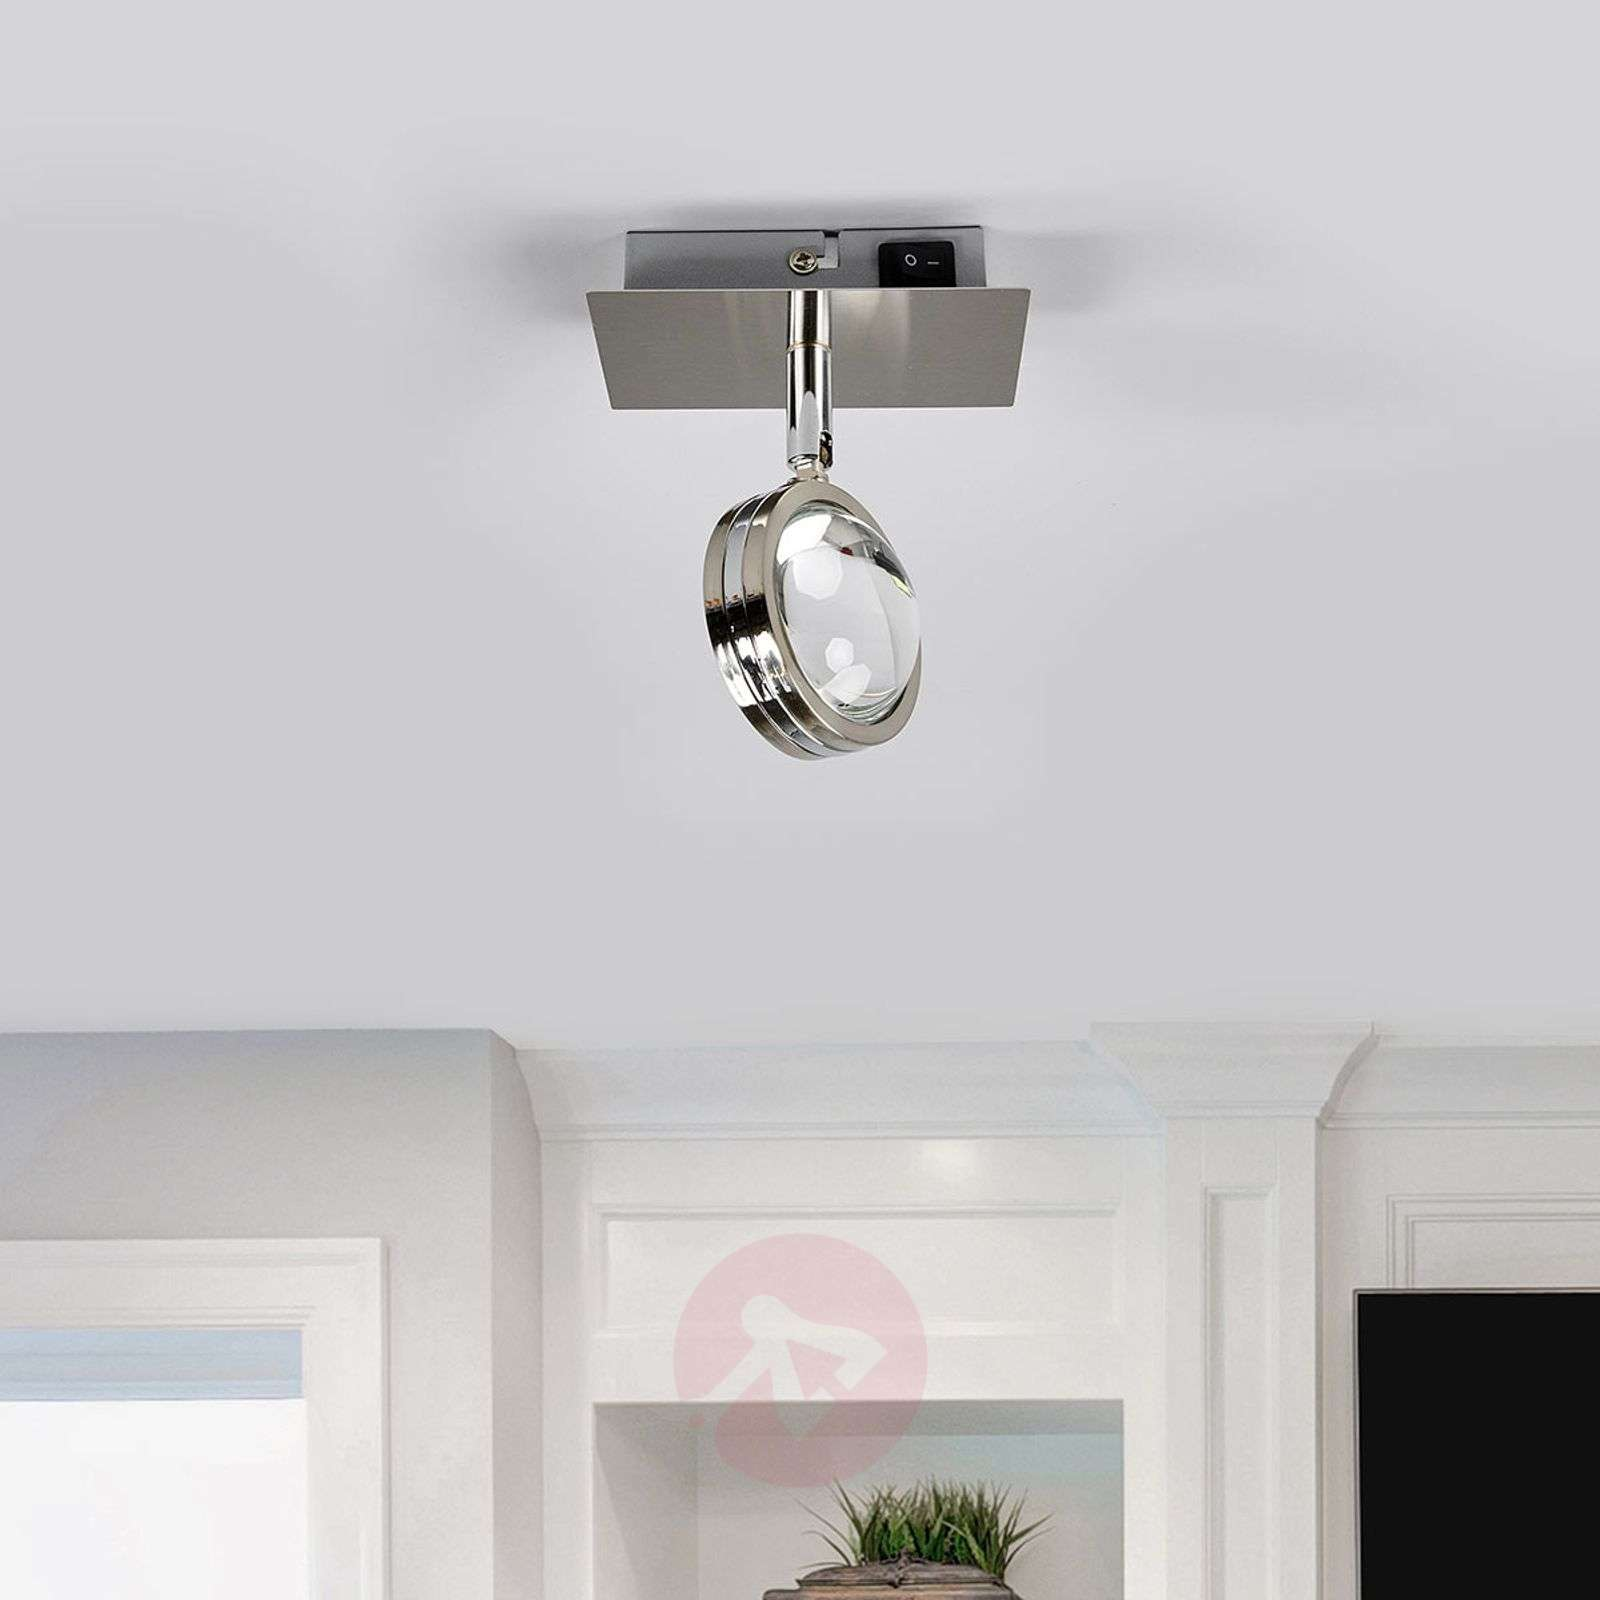 Pablos LED wall lamp with a glass lens-9994123-014